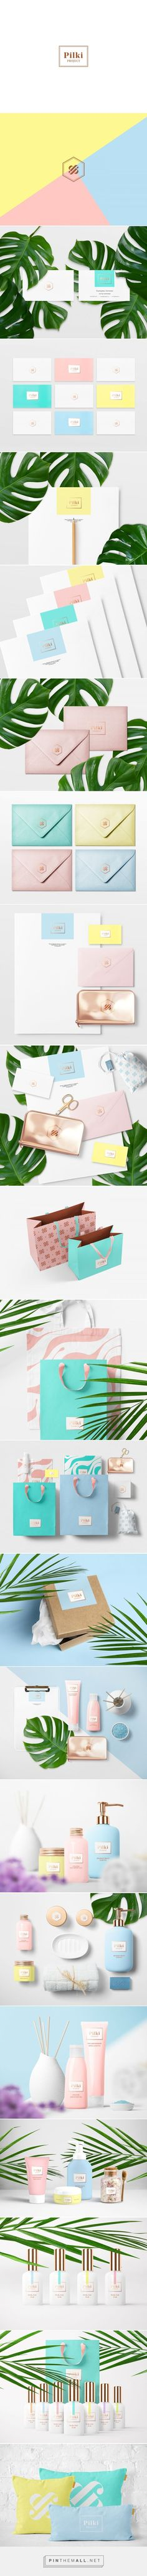 Pilki Nail Care Salon Branding and Packaging by Rina Rusyaeva